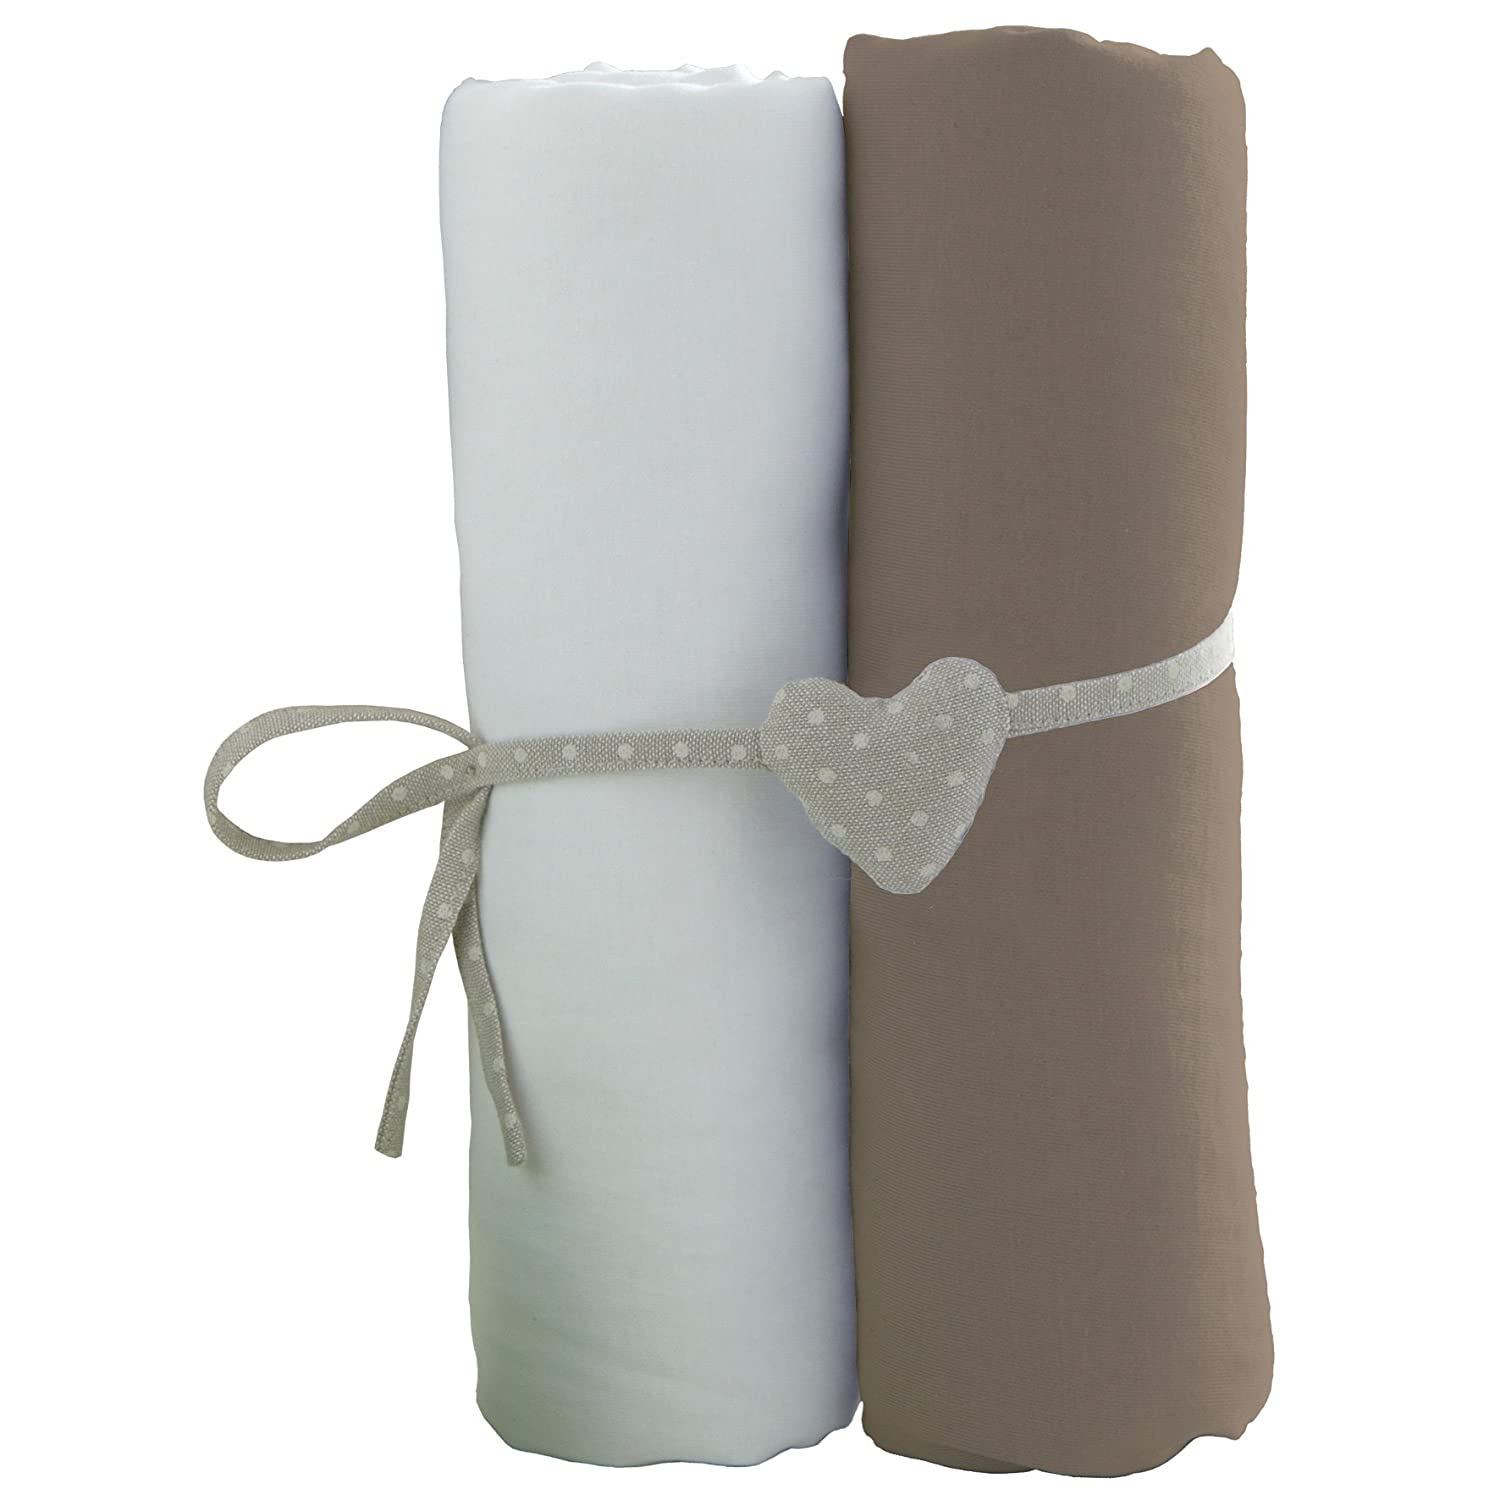 Babycalin Fitted Sheets Set of 2